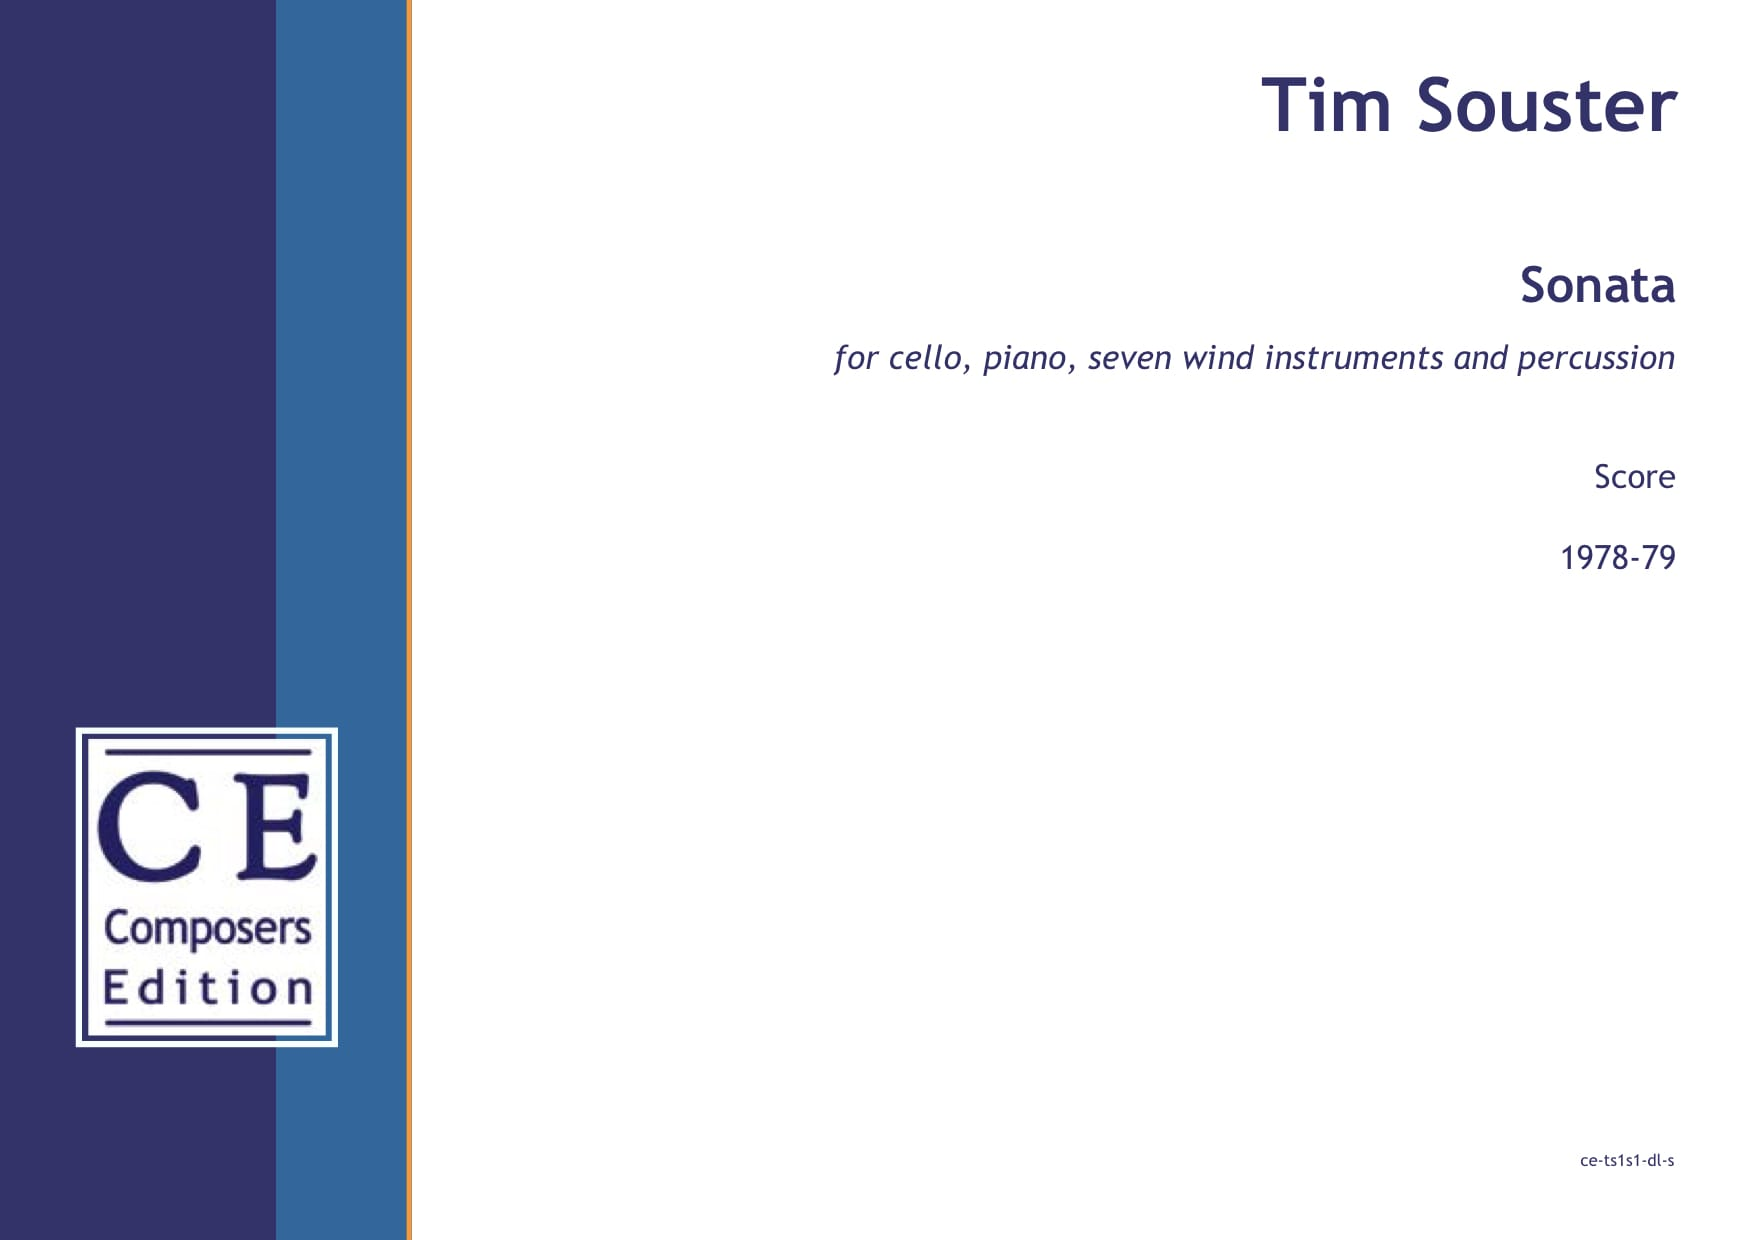 Tim Souster: Sonata for cello, piano, seven wind instruments and percussion